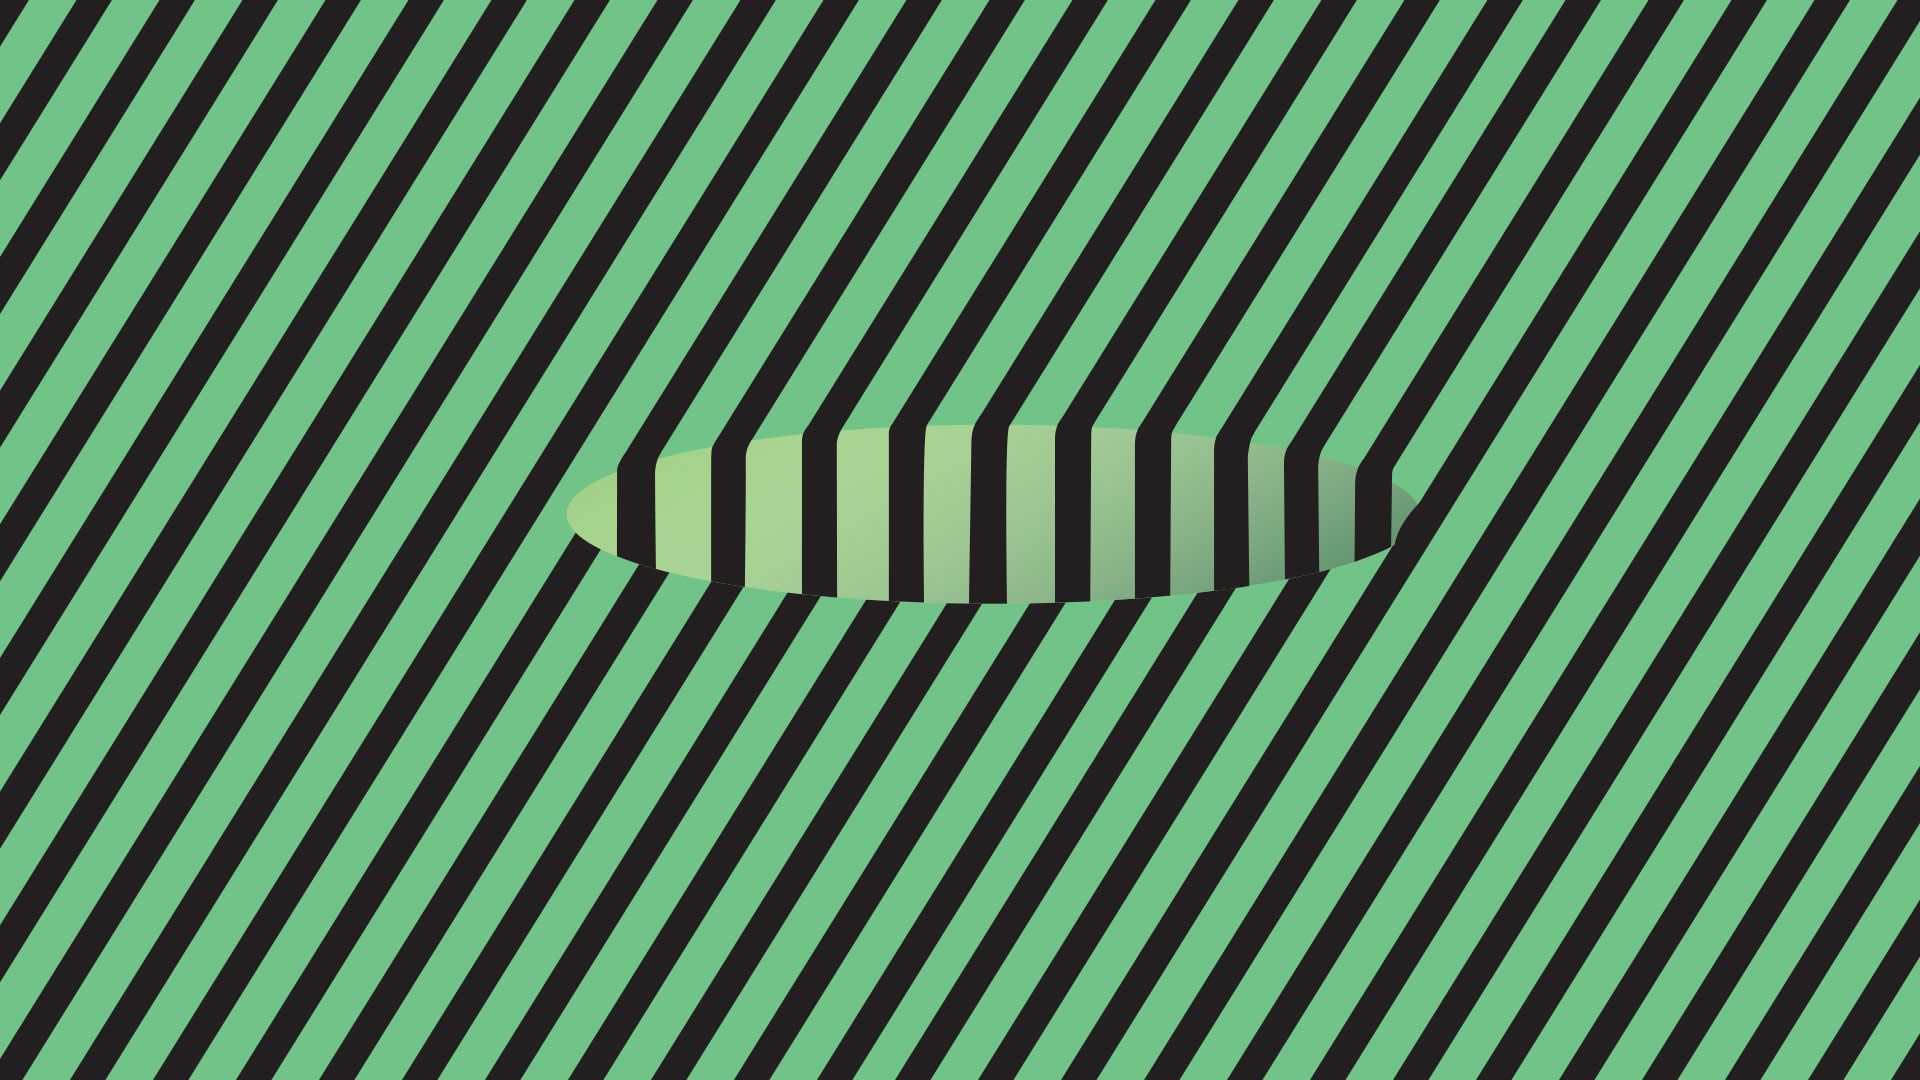 Optical illusion of hole with green and black striped lines going across.